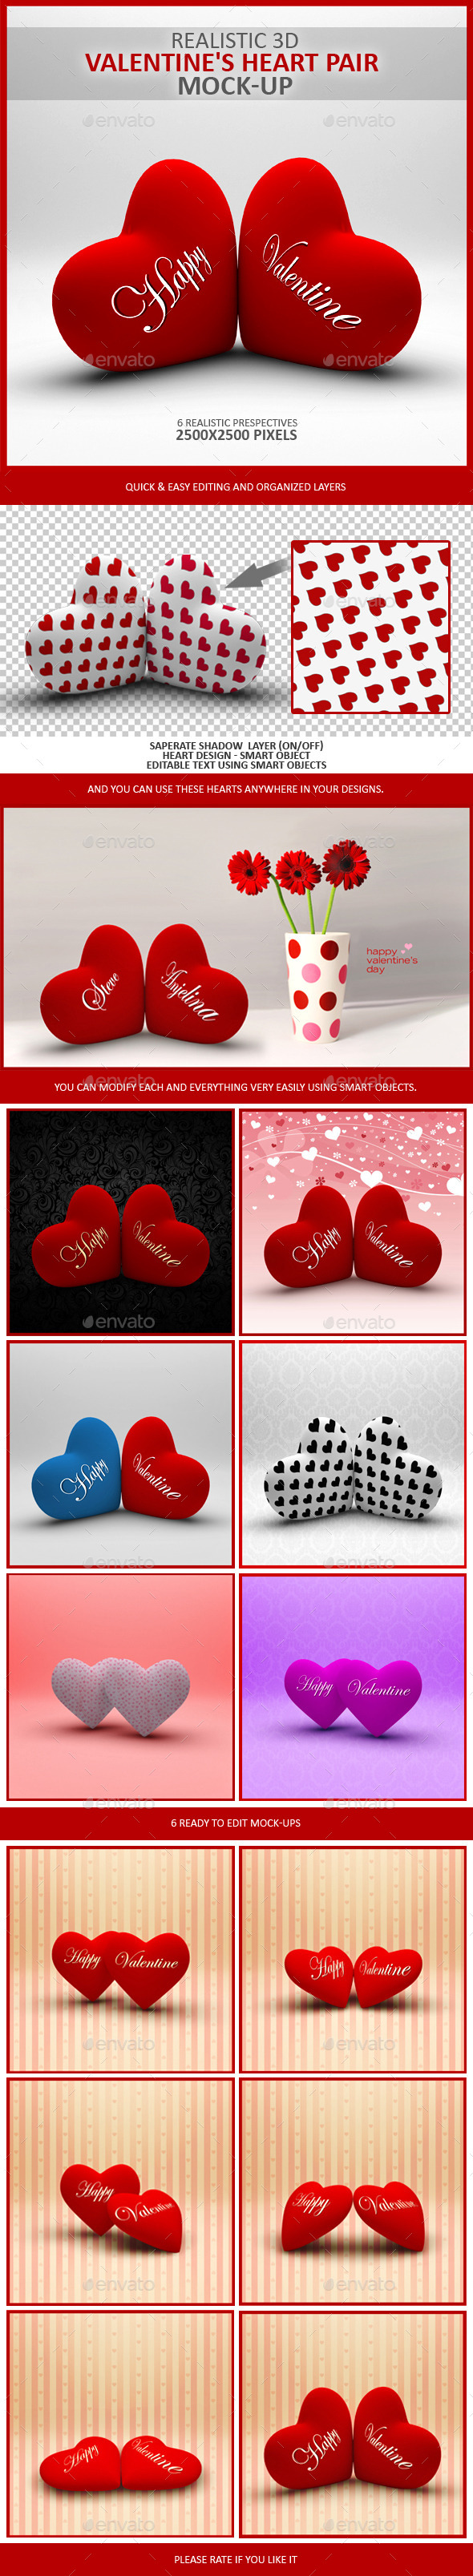 Valentine's Heart Pair Mock-Up - Product Mock-Ups Graphics